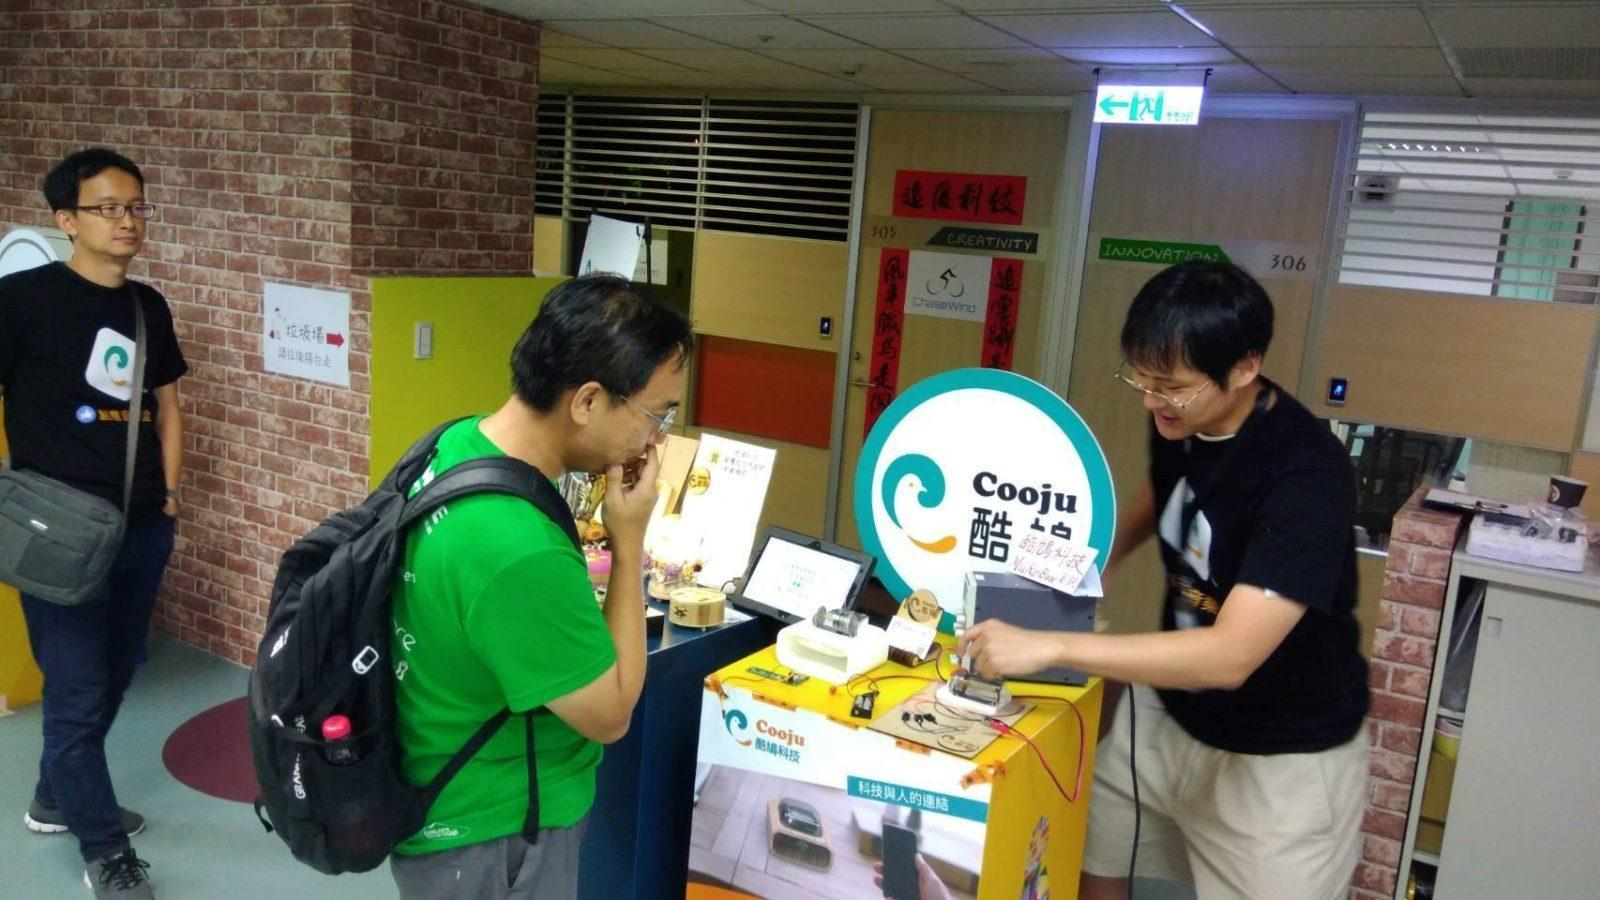 In a maker's exhibit, Dr. Feng explained how his prototype worked to a visitor interested in the technology used in Muro Box.